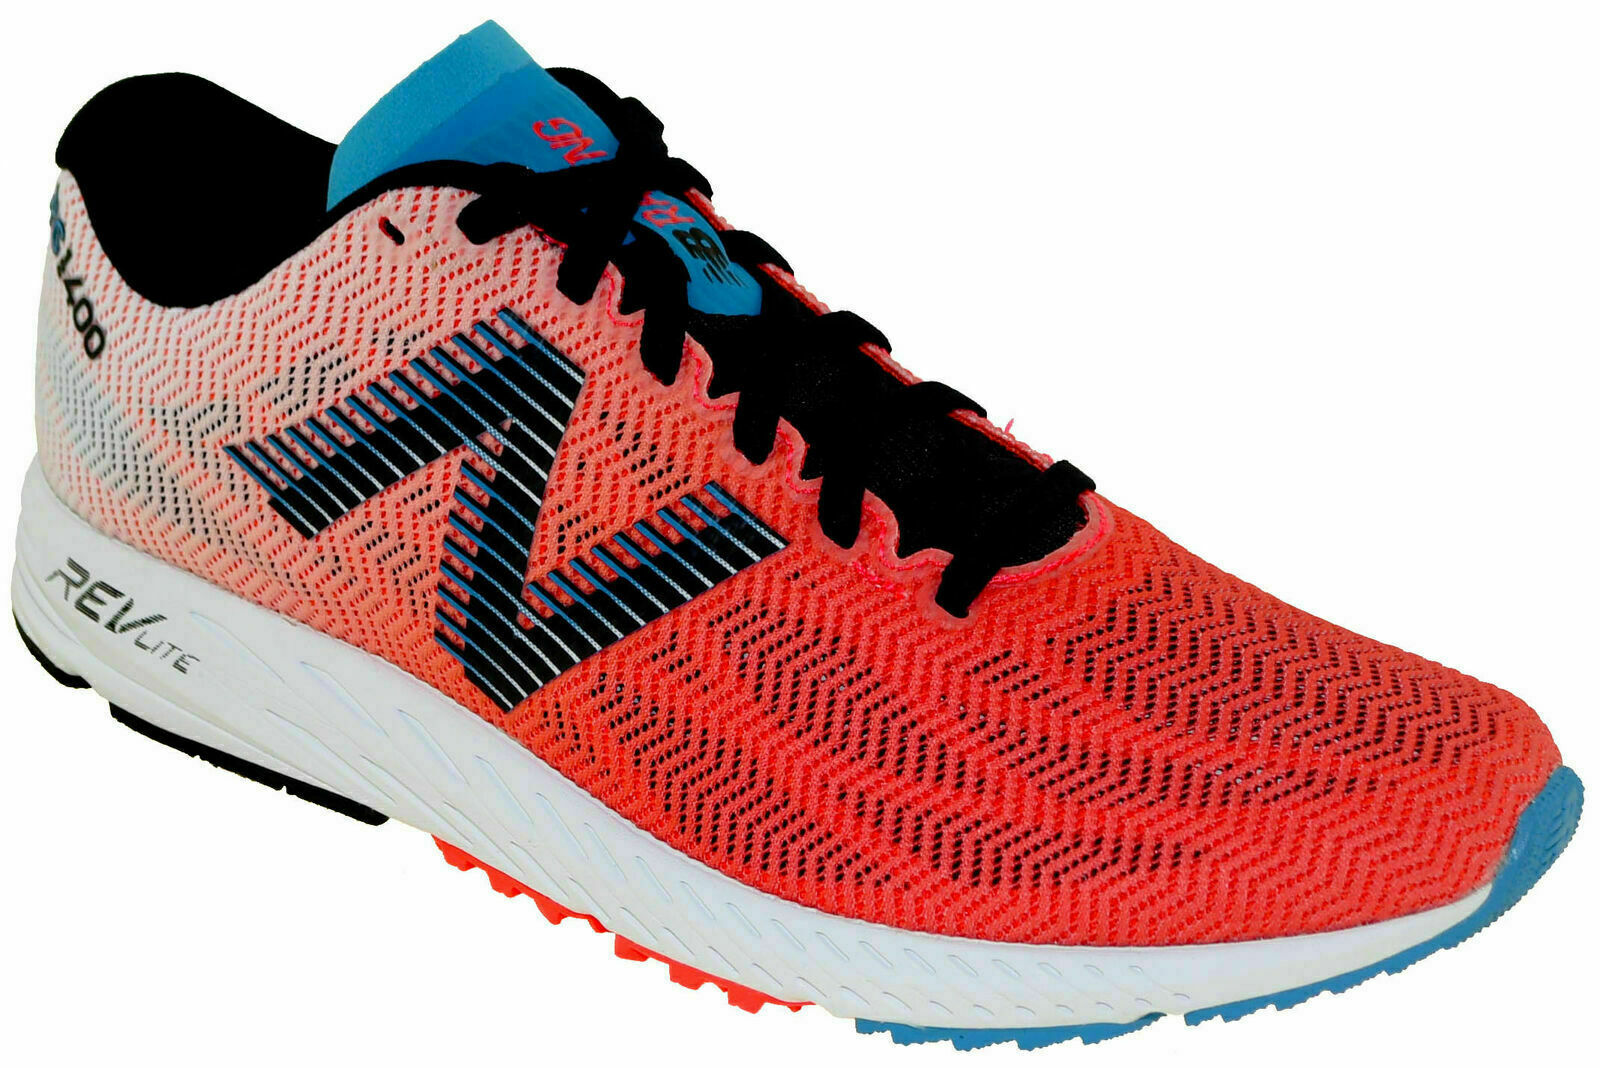 Wohombres New Balance W1400PB6 Road competencia Running zapatos